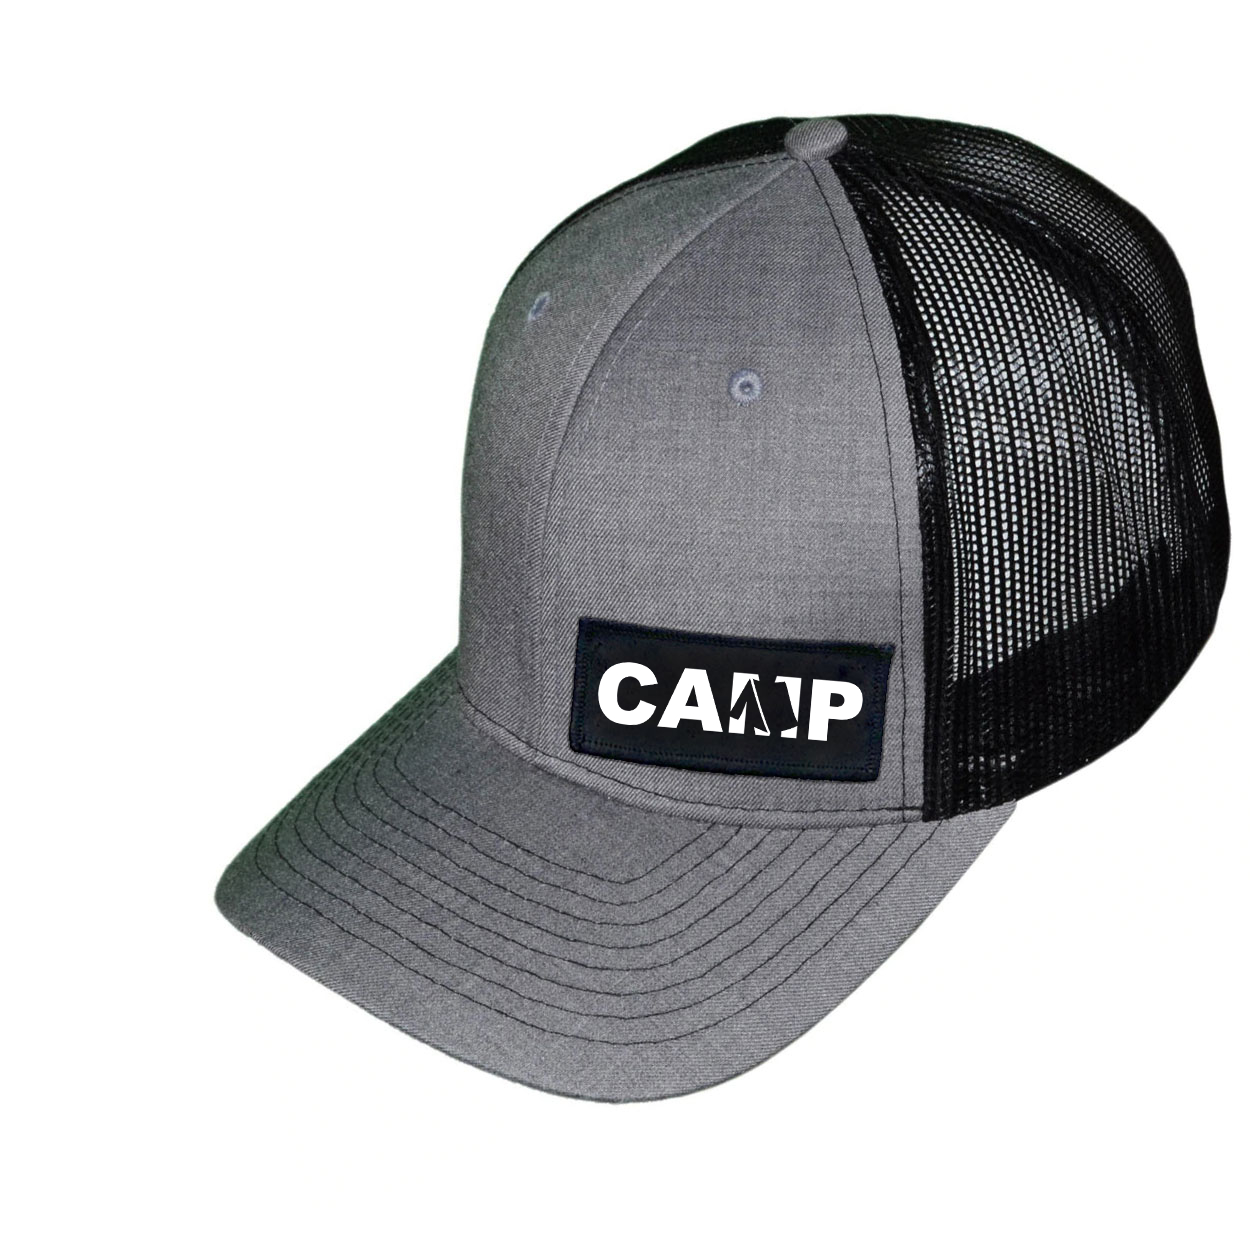 Camp Tent Logo Night Out Woven Patch Snapback Trucker Hat Heather Gray/Black (White Logo)